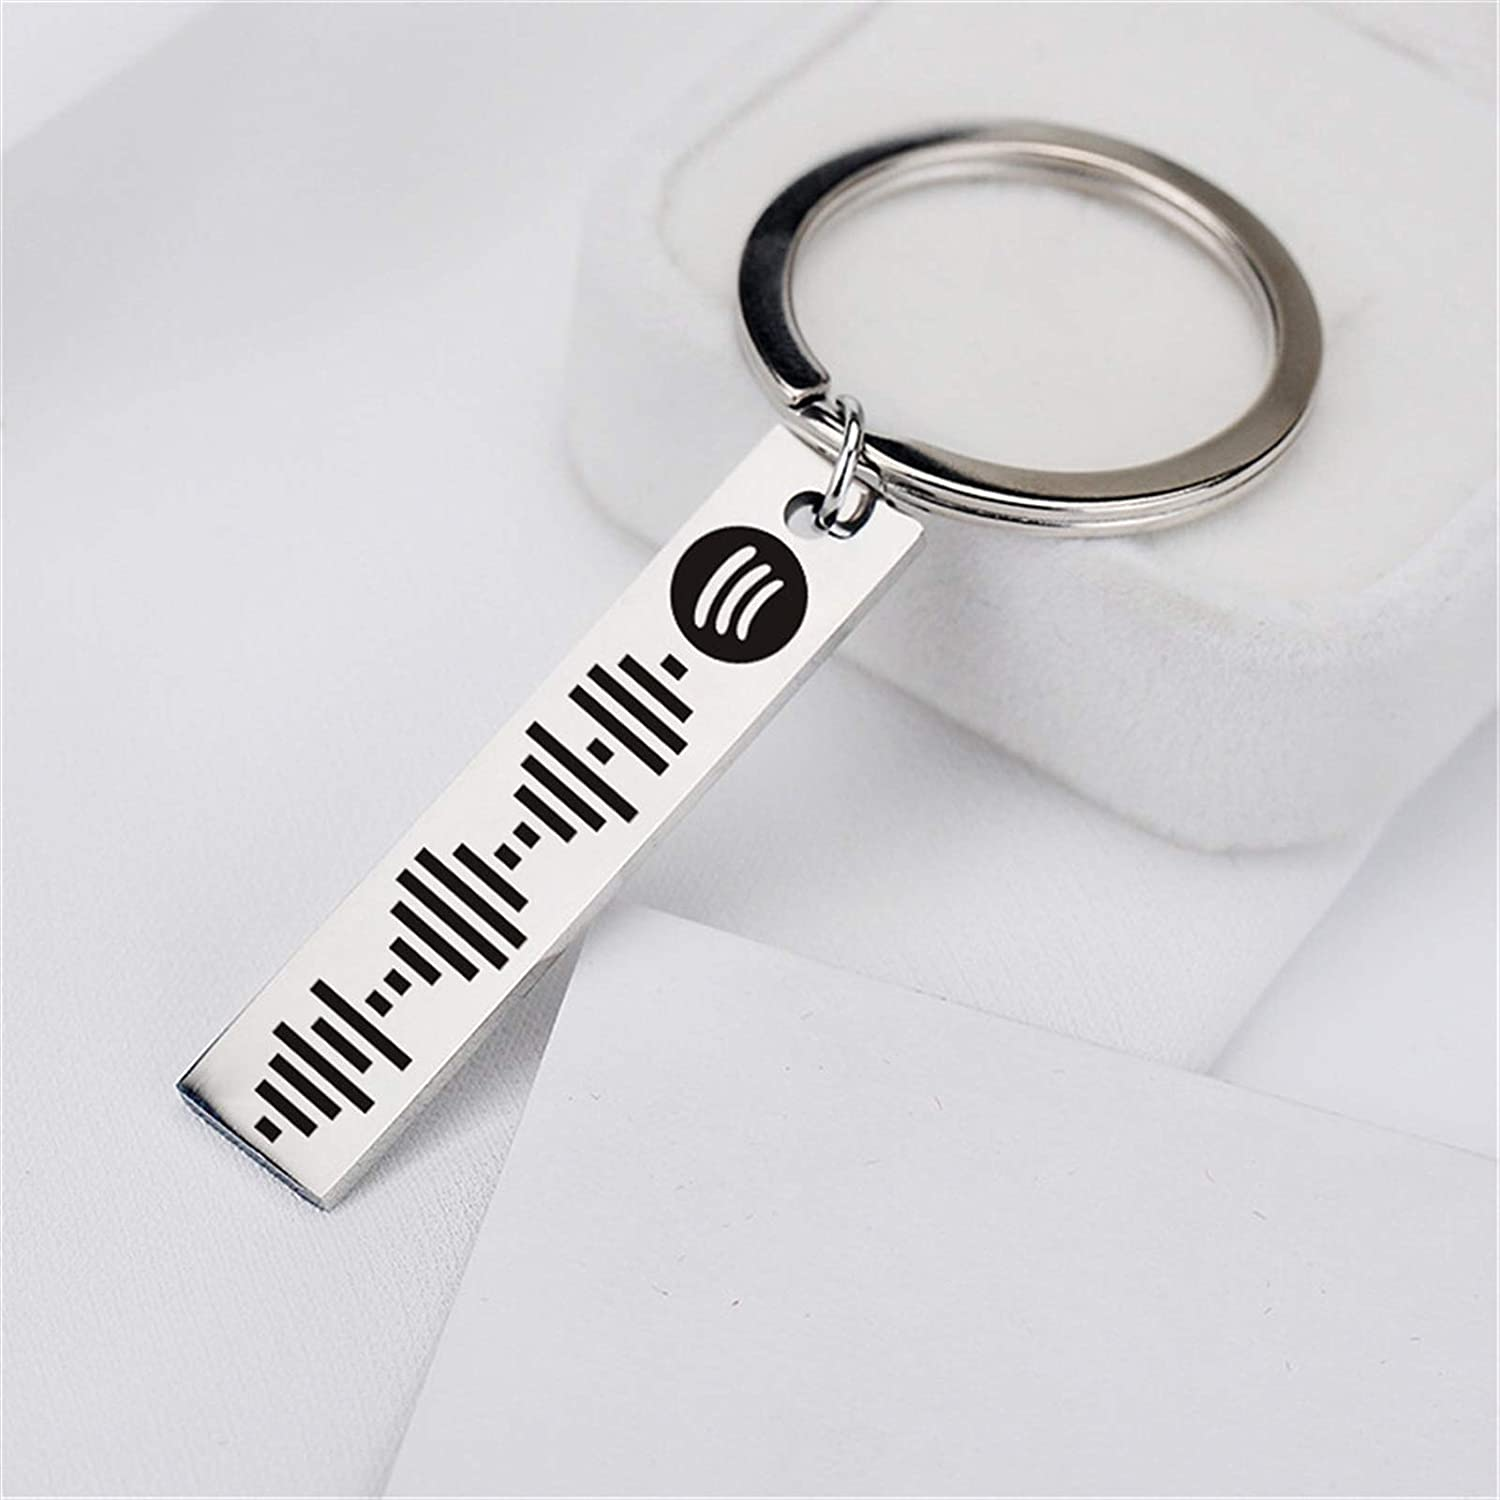 JZYZSNLB Ranking TOP2 Keychain Personalized Music Code Wome Scan Cheap mail order specialty store for